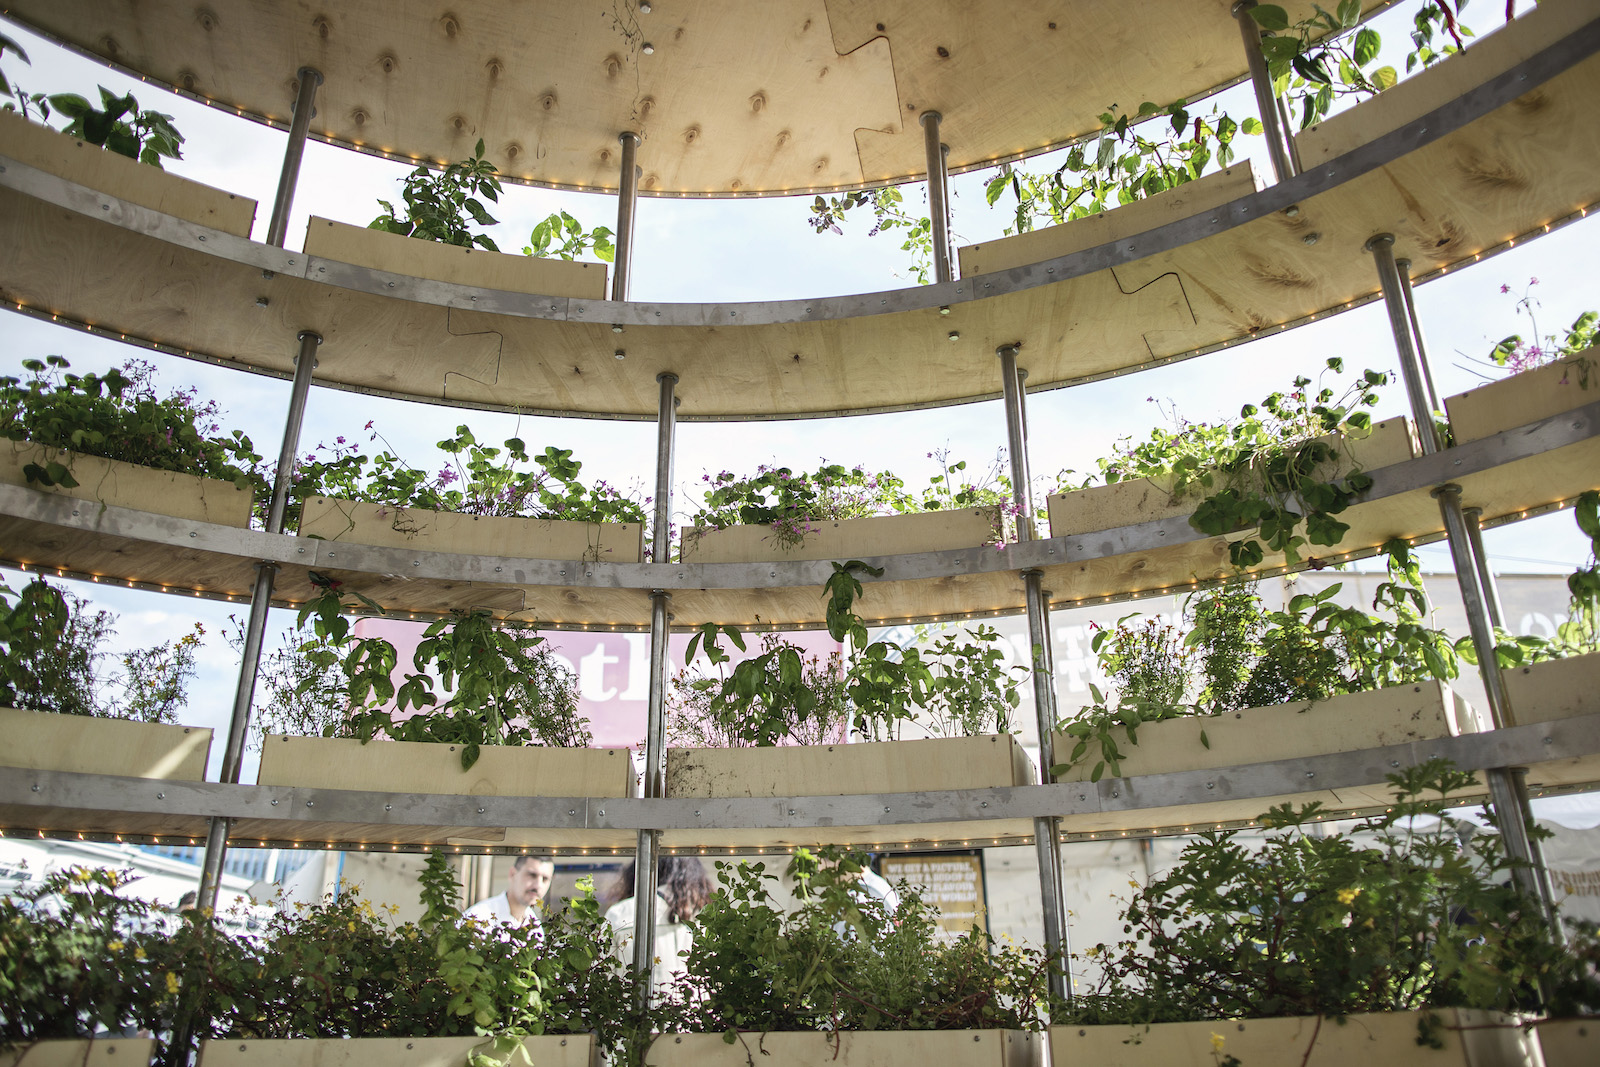 space10-growroom-inside